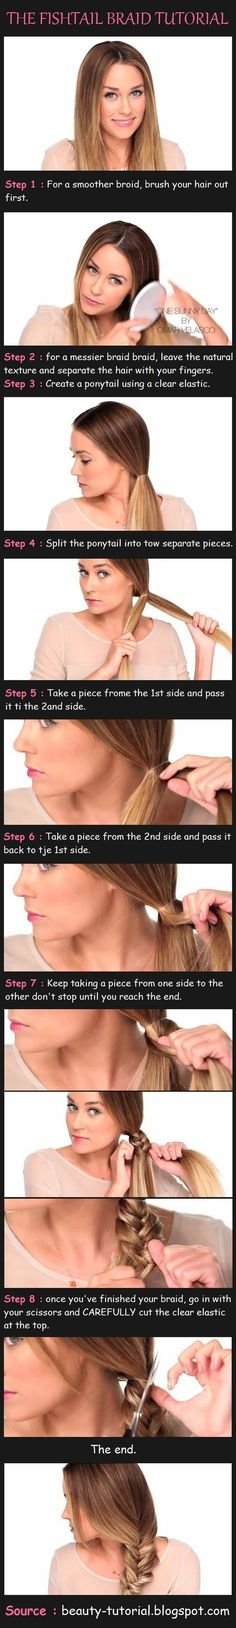 Everyone always asks me how I get such a beautiful fishtail! This tutorial makes it pretty simple! Check it out!